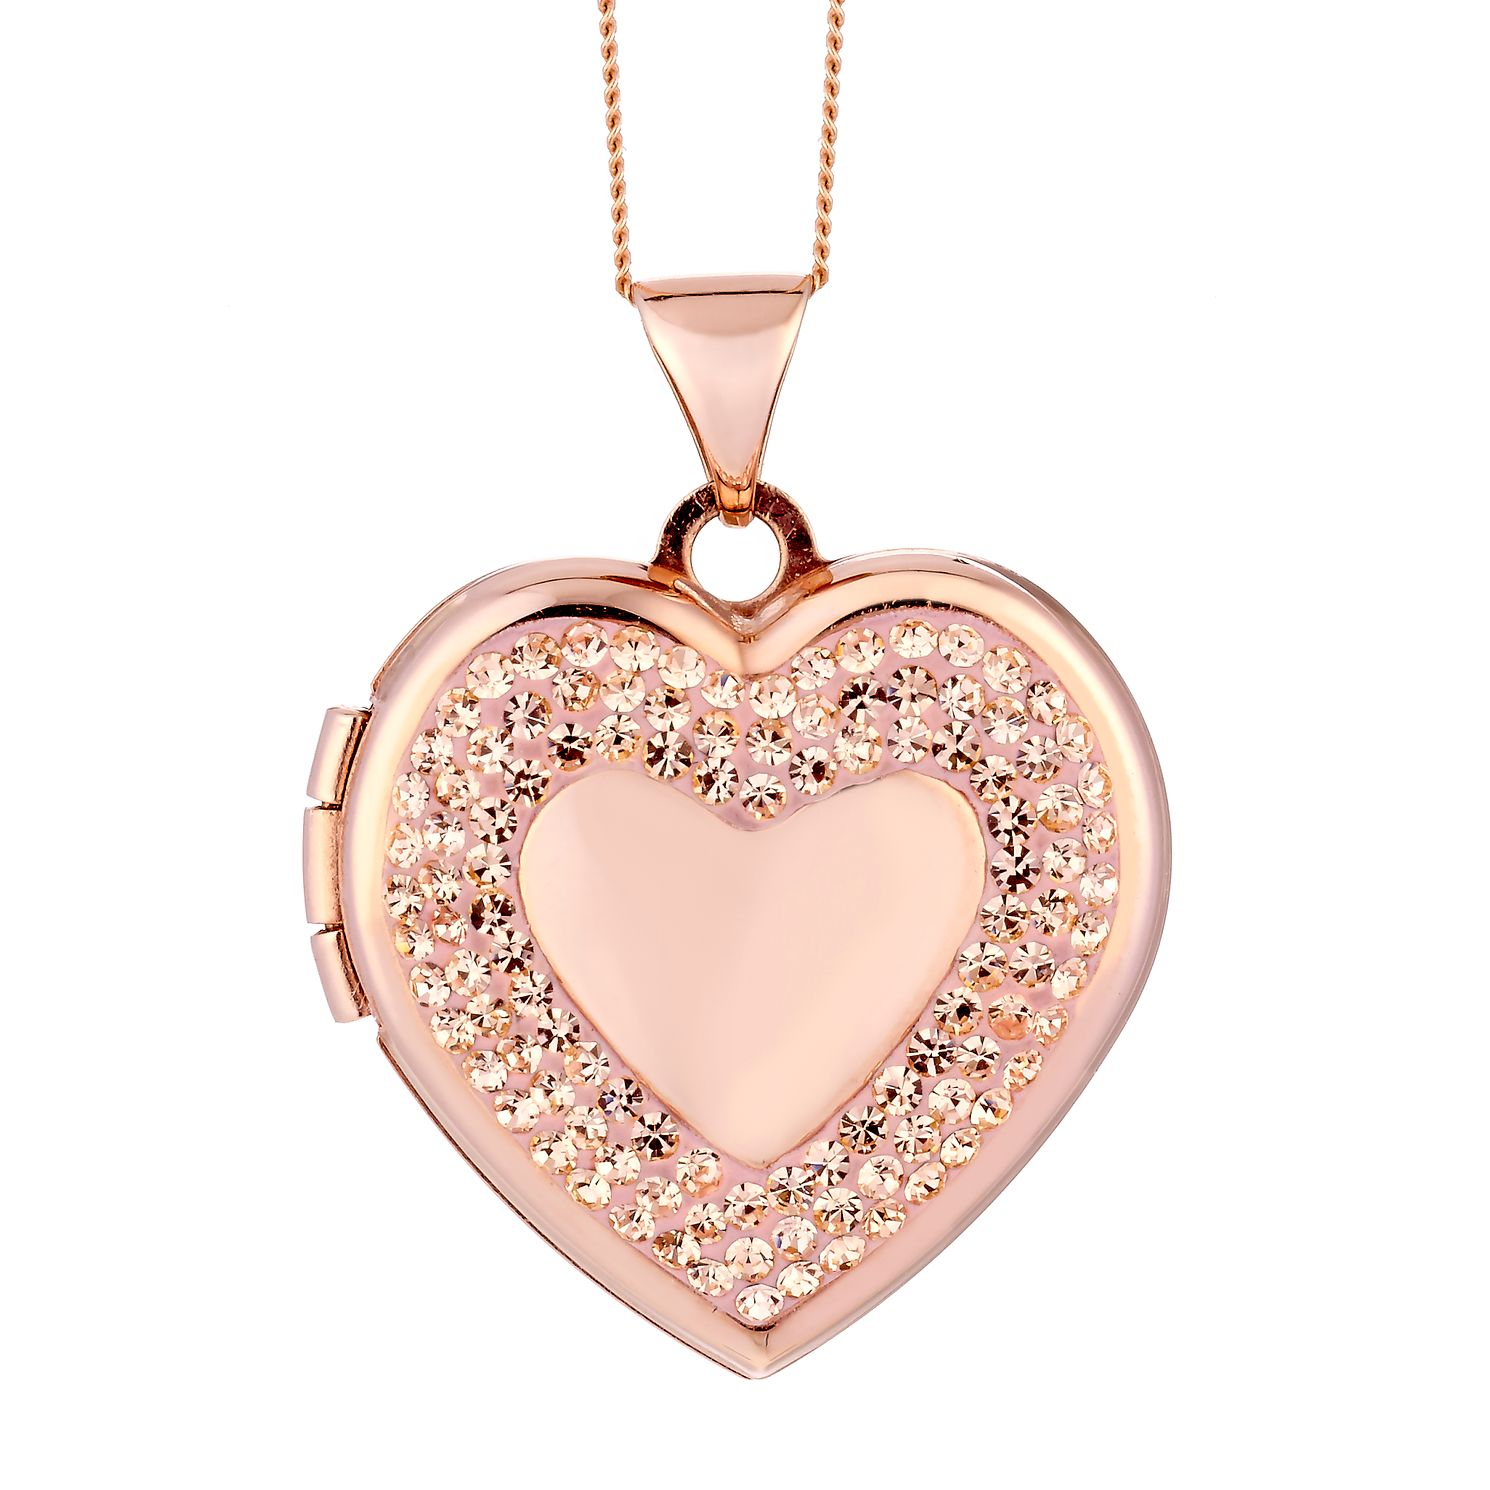 unique locket products gold lockets and charms rose